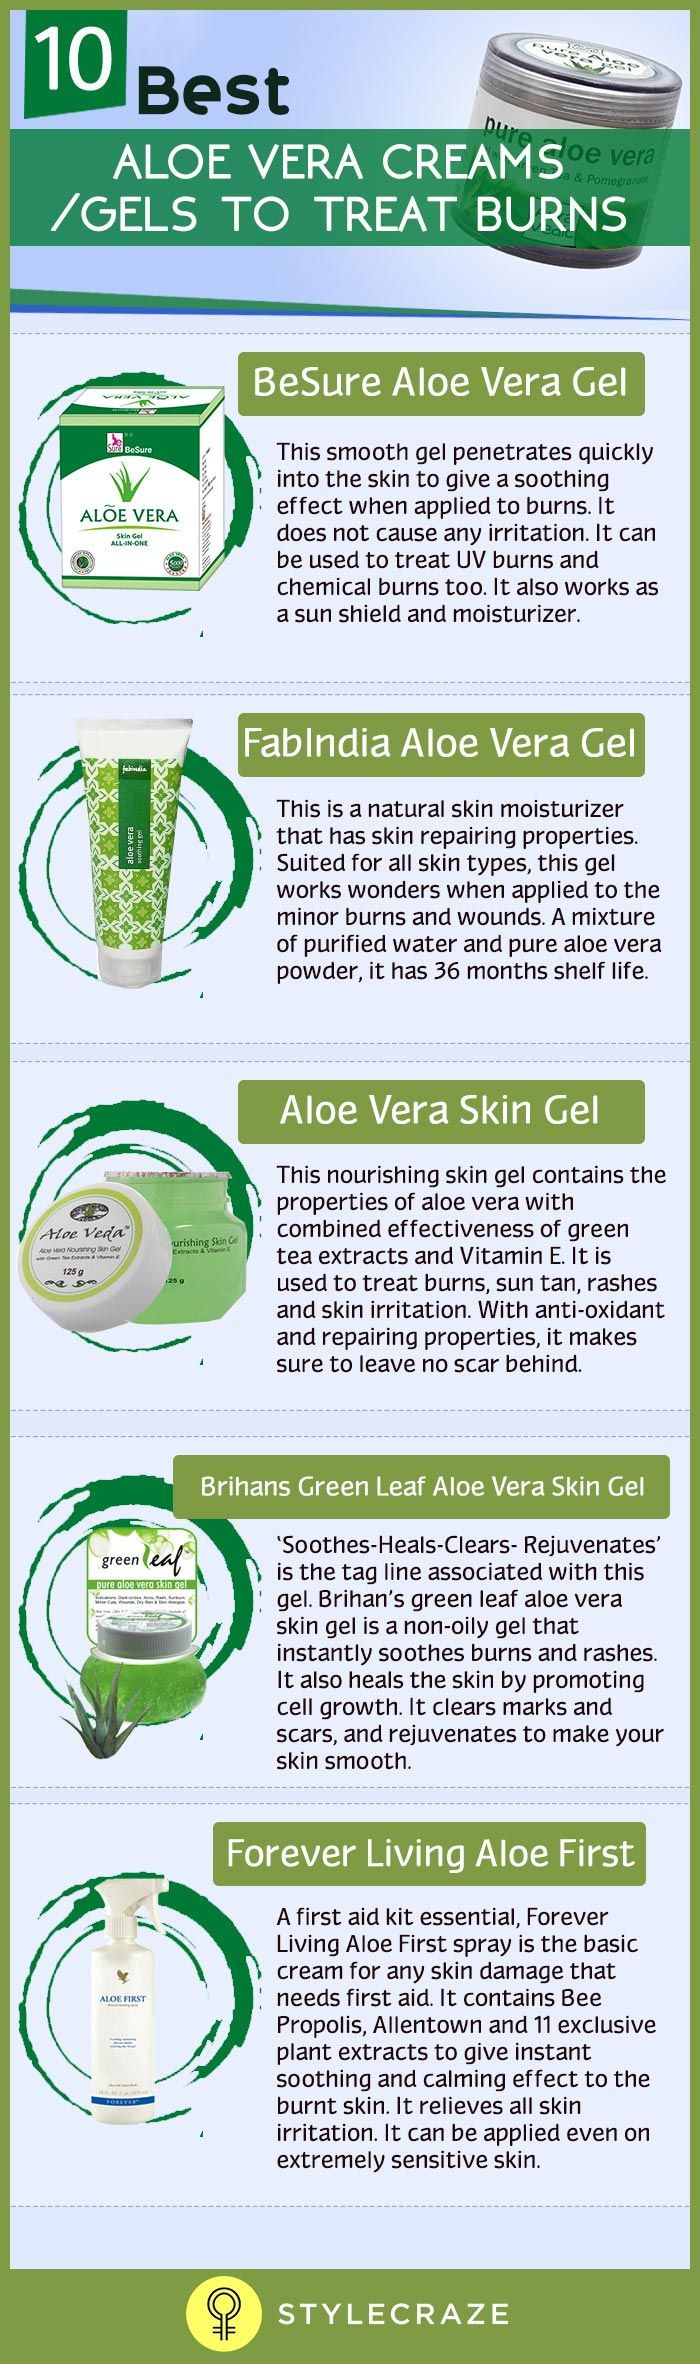 An ointment to treat minor skin burns and sunburn, and one which gives instant soothing relief is a must have in all first aid kits. Aloe vera has recently gained a lot of popularity for its healing properties. But is Aloe Vera good for burns? A variety of aloe vera cream/ointment/gels are now available to treat burns. These ointments do not cause any side effect and can be used as a moisturizer or body gel at the same time.